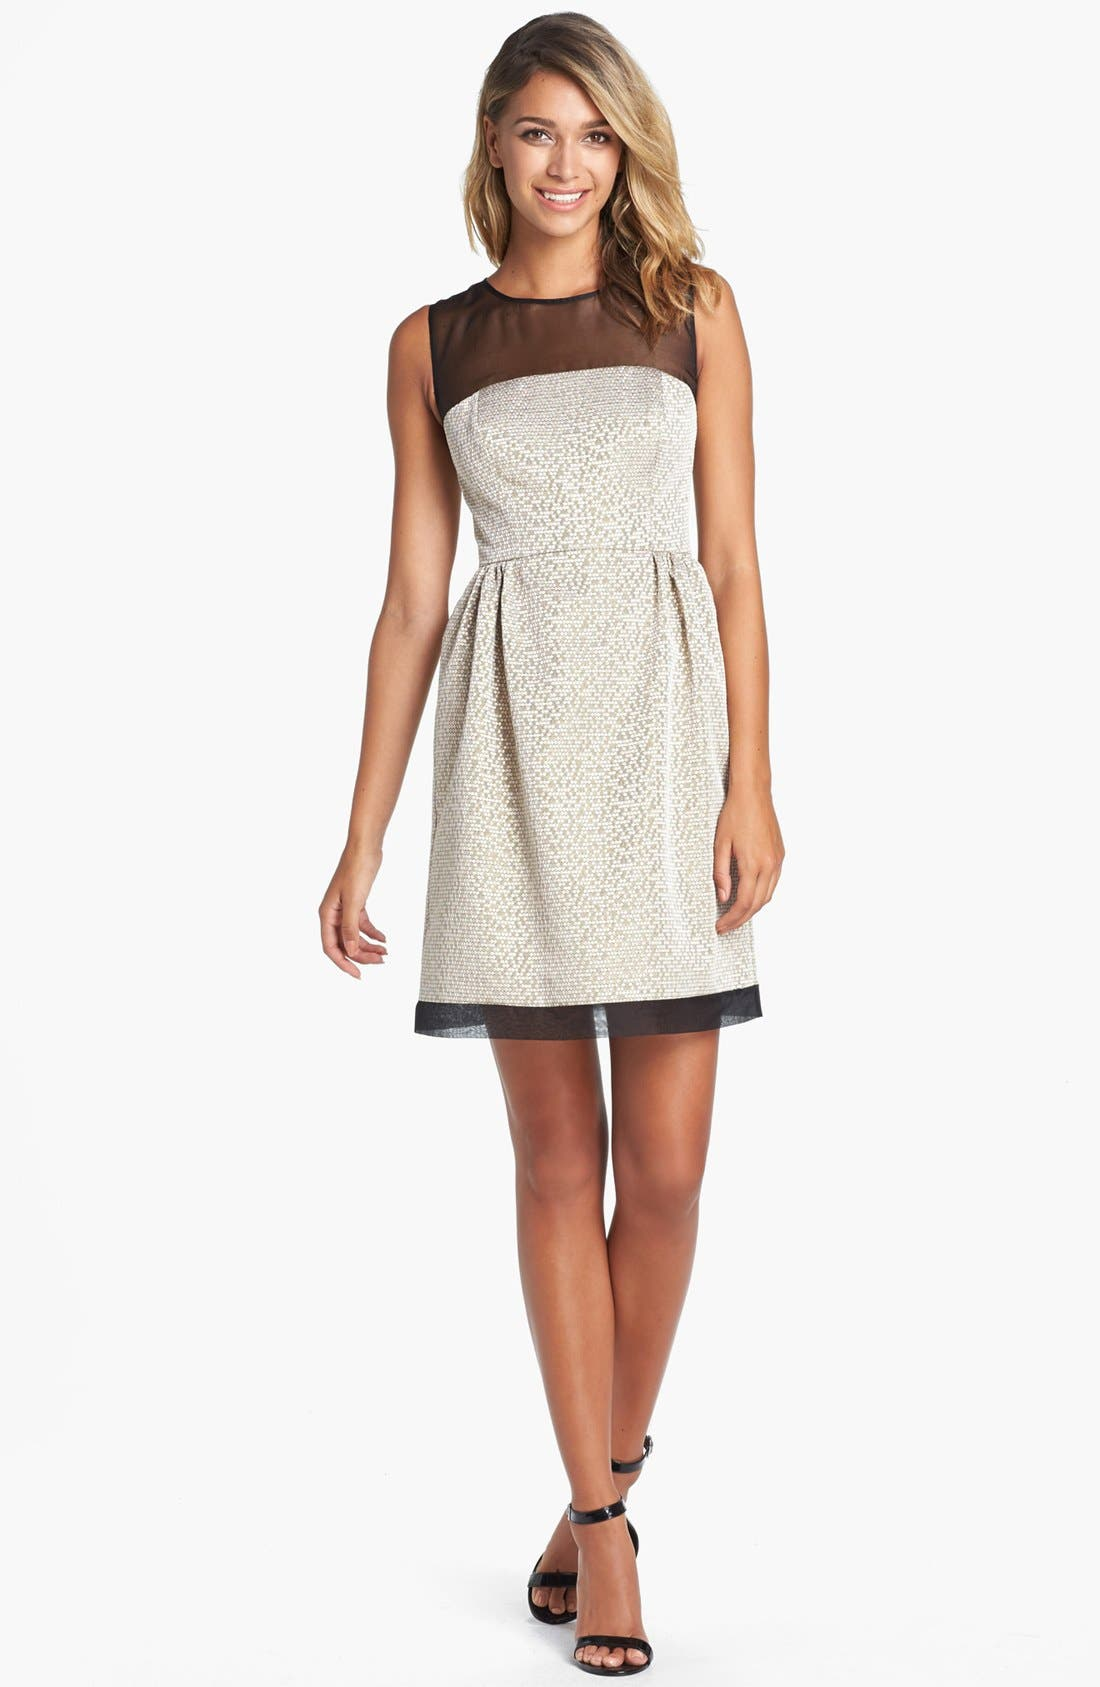 Alternate Image 1 Selected - Ivy & Blu Jacquard Fit & Flare Dress (Petite)